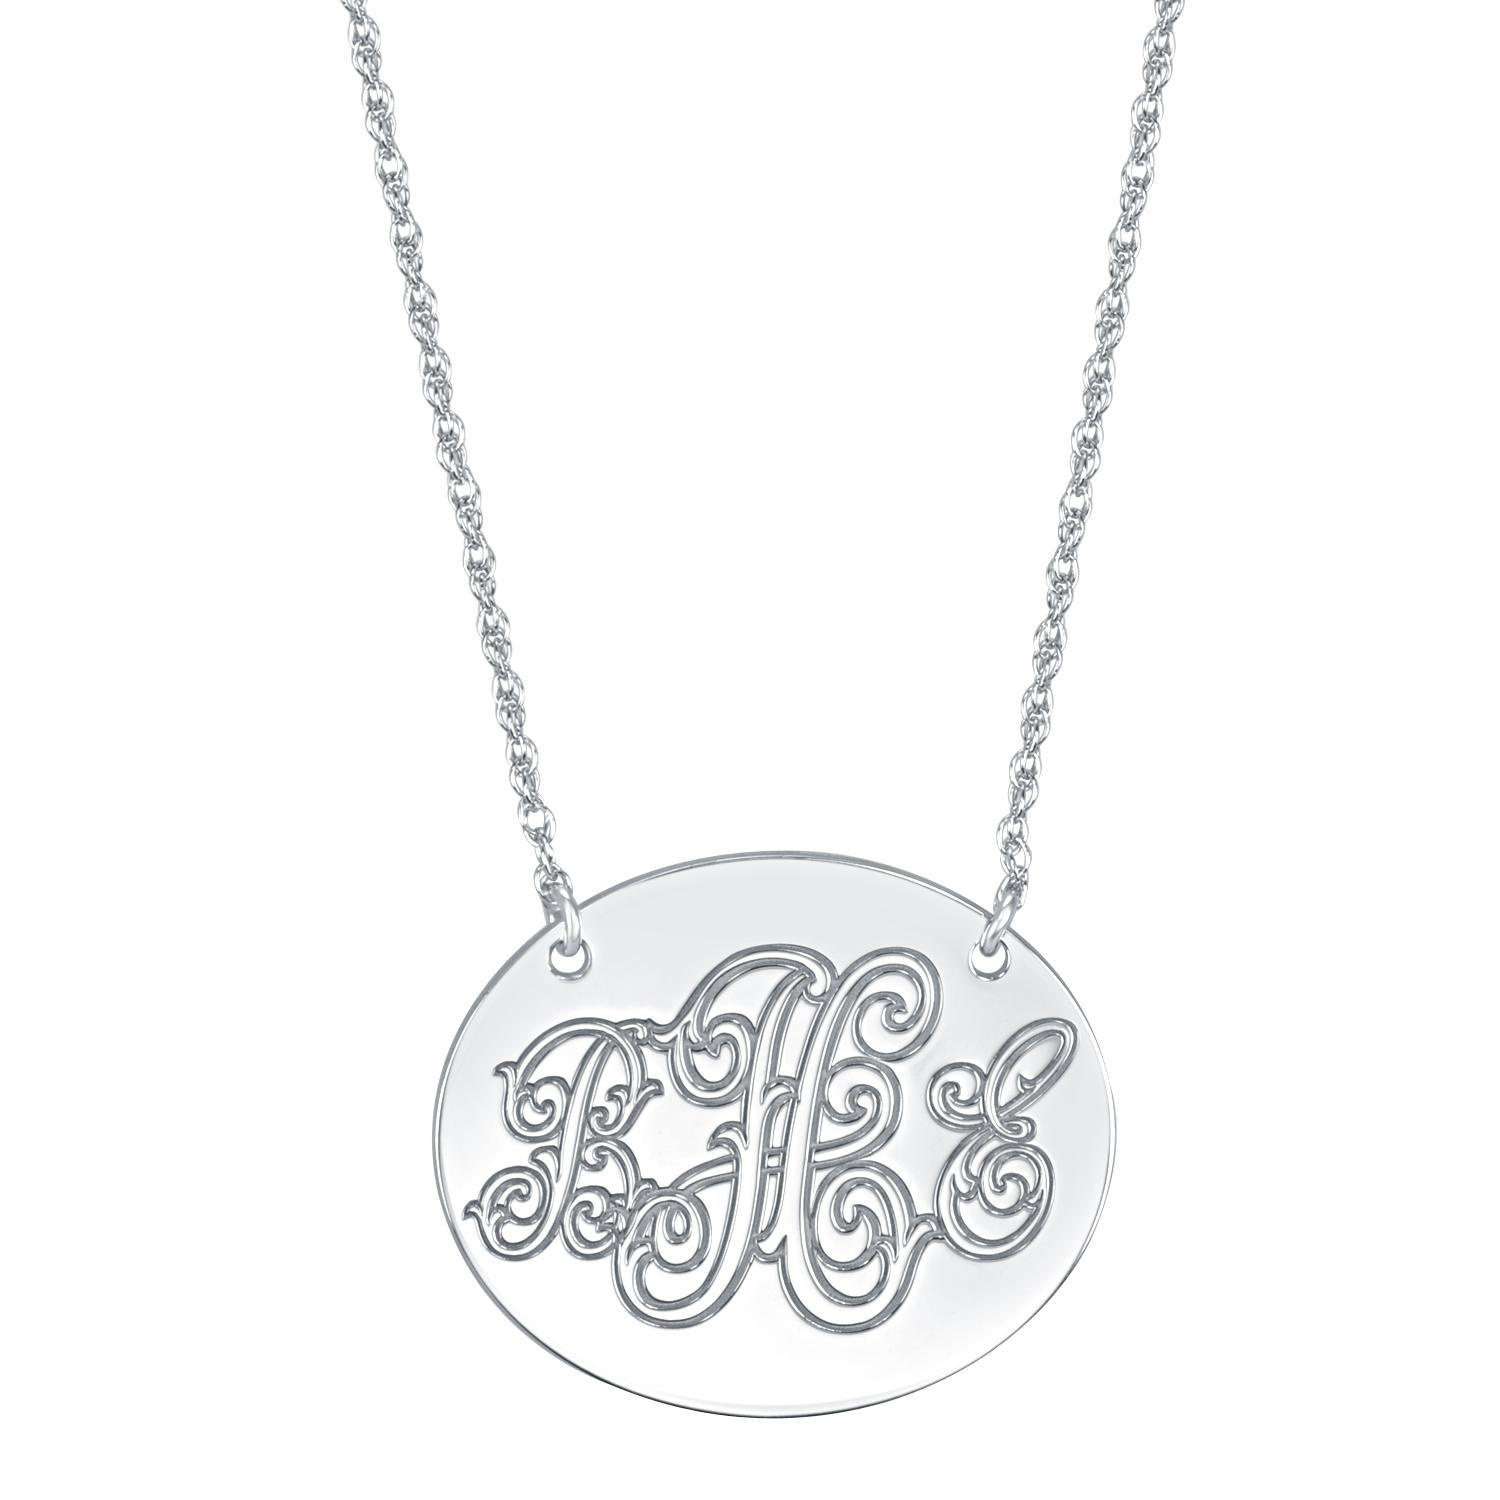 Alison and ivy oblong monogram necklace 25 x 30mm